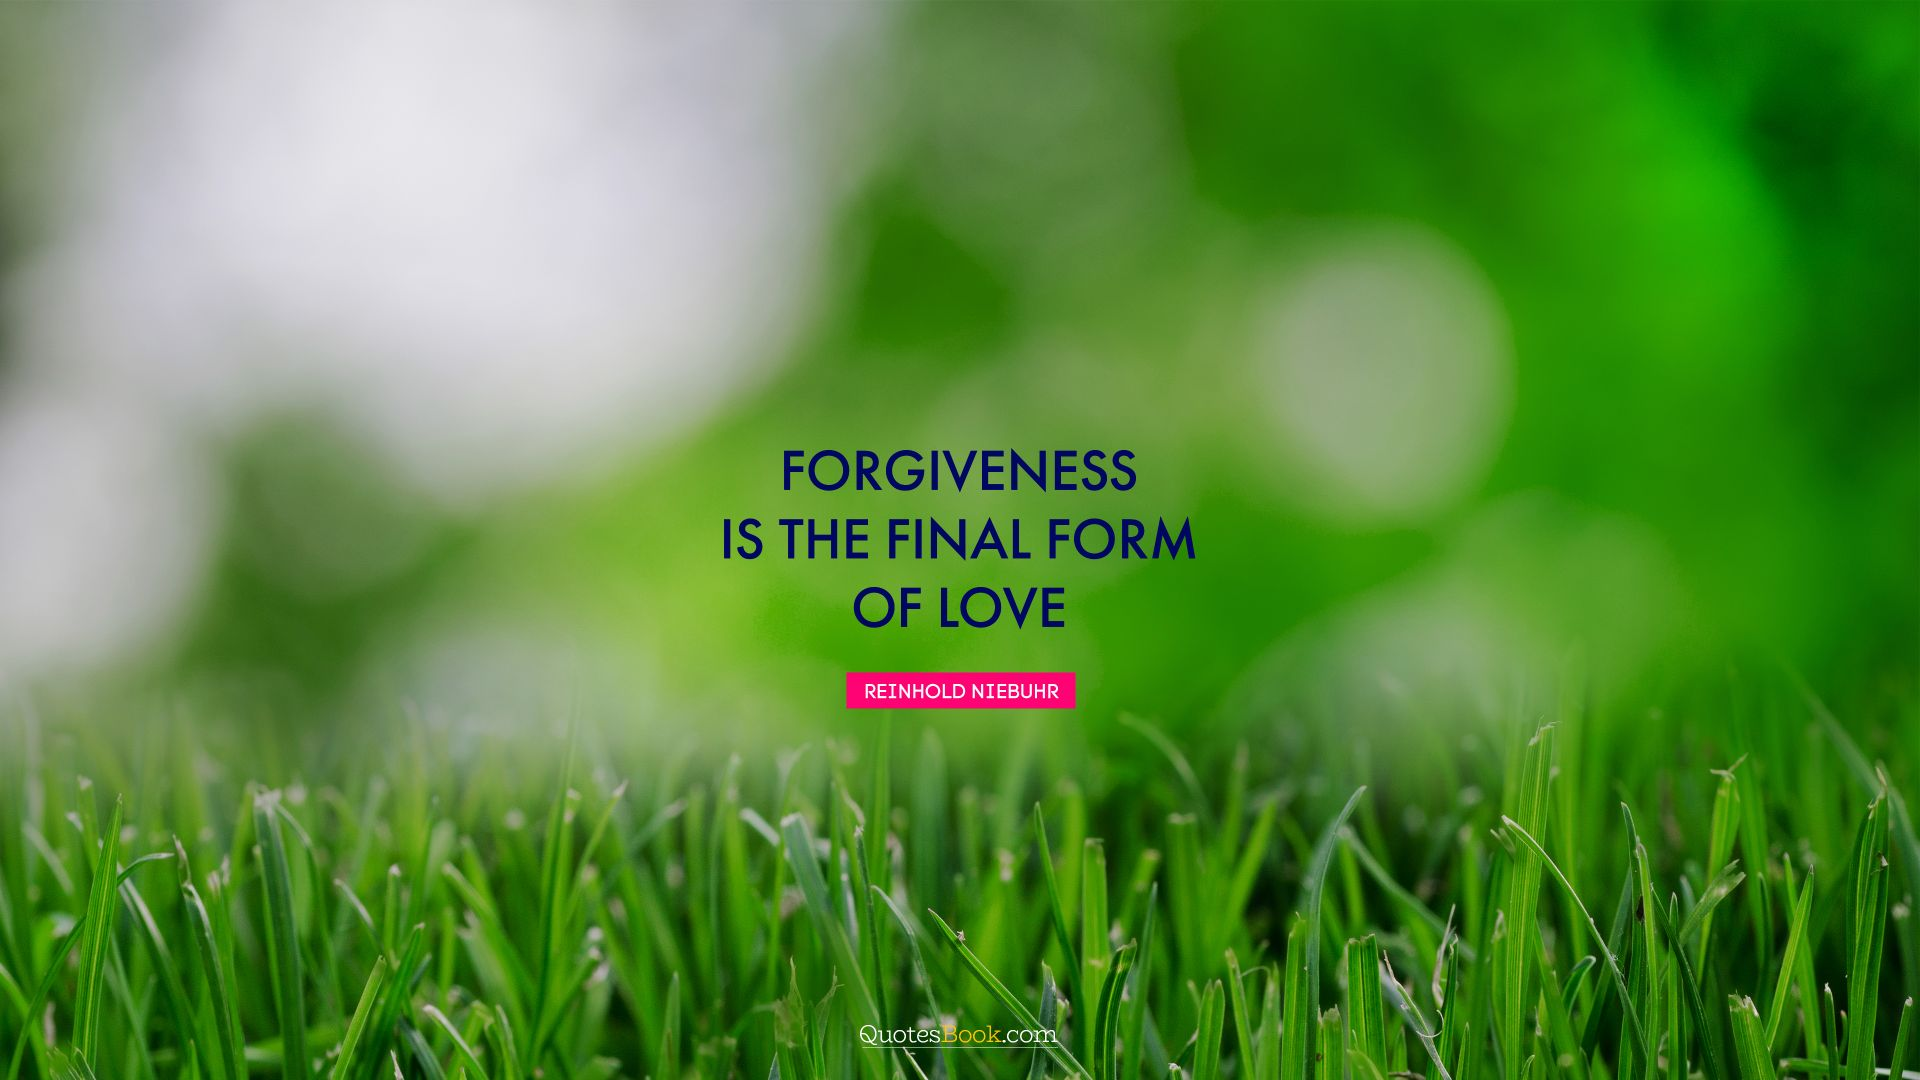 Forgiveness is the final form of love. - Quote by Reinhold Niebuhr